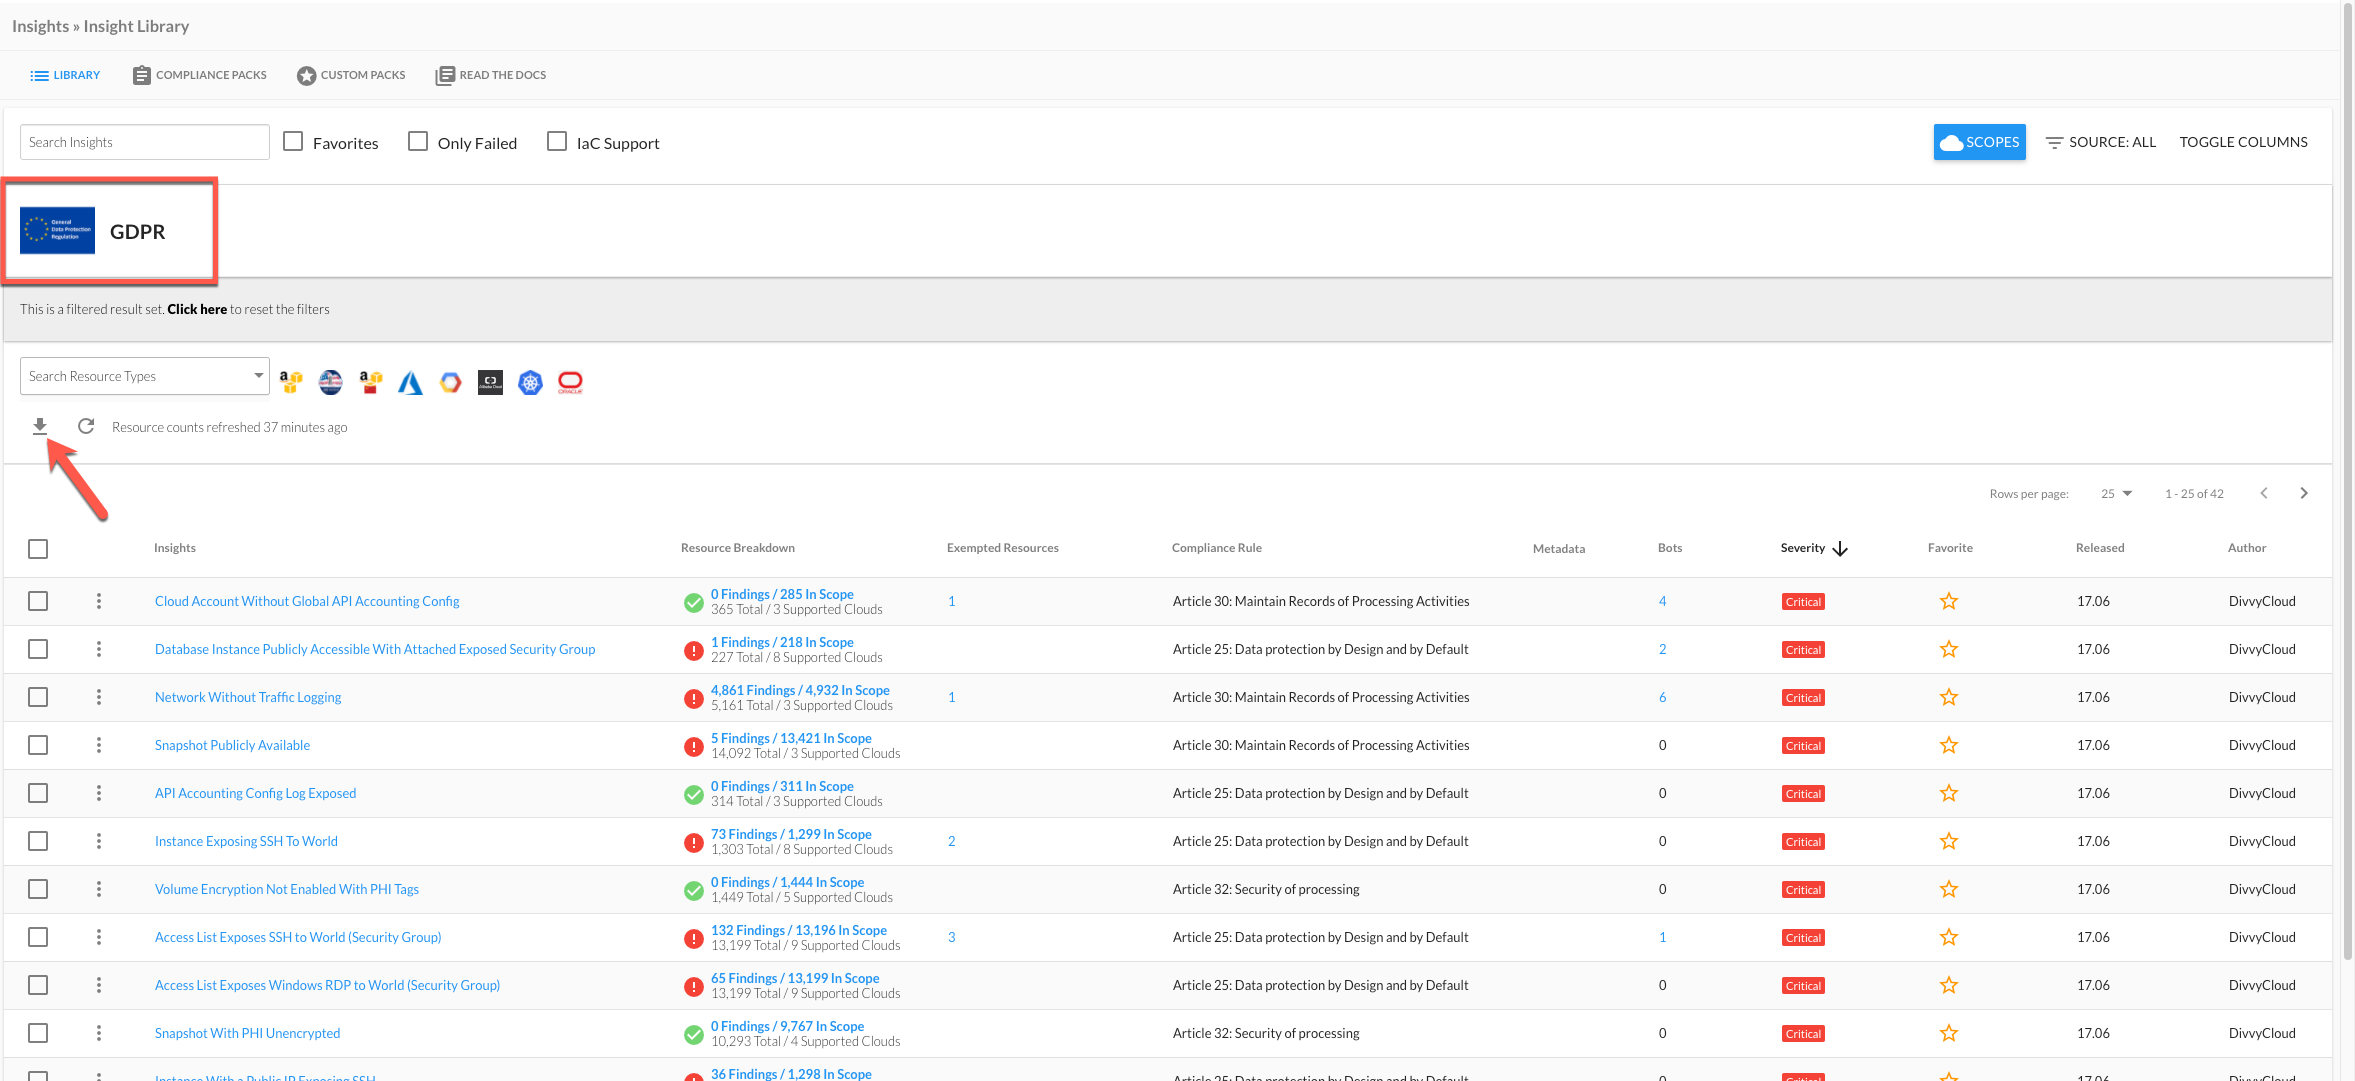 Downloading Insight Results From the Insights Page